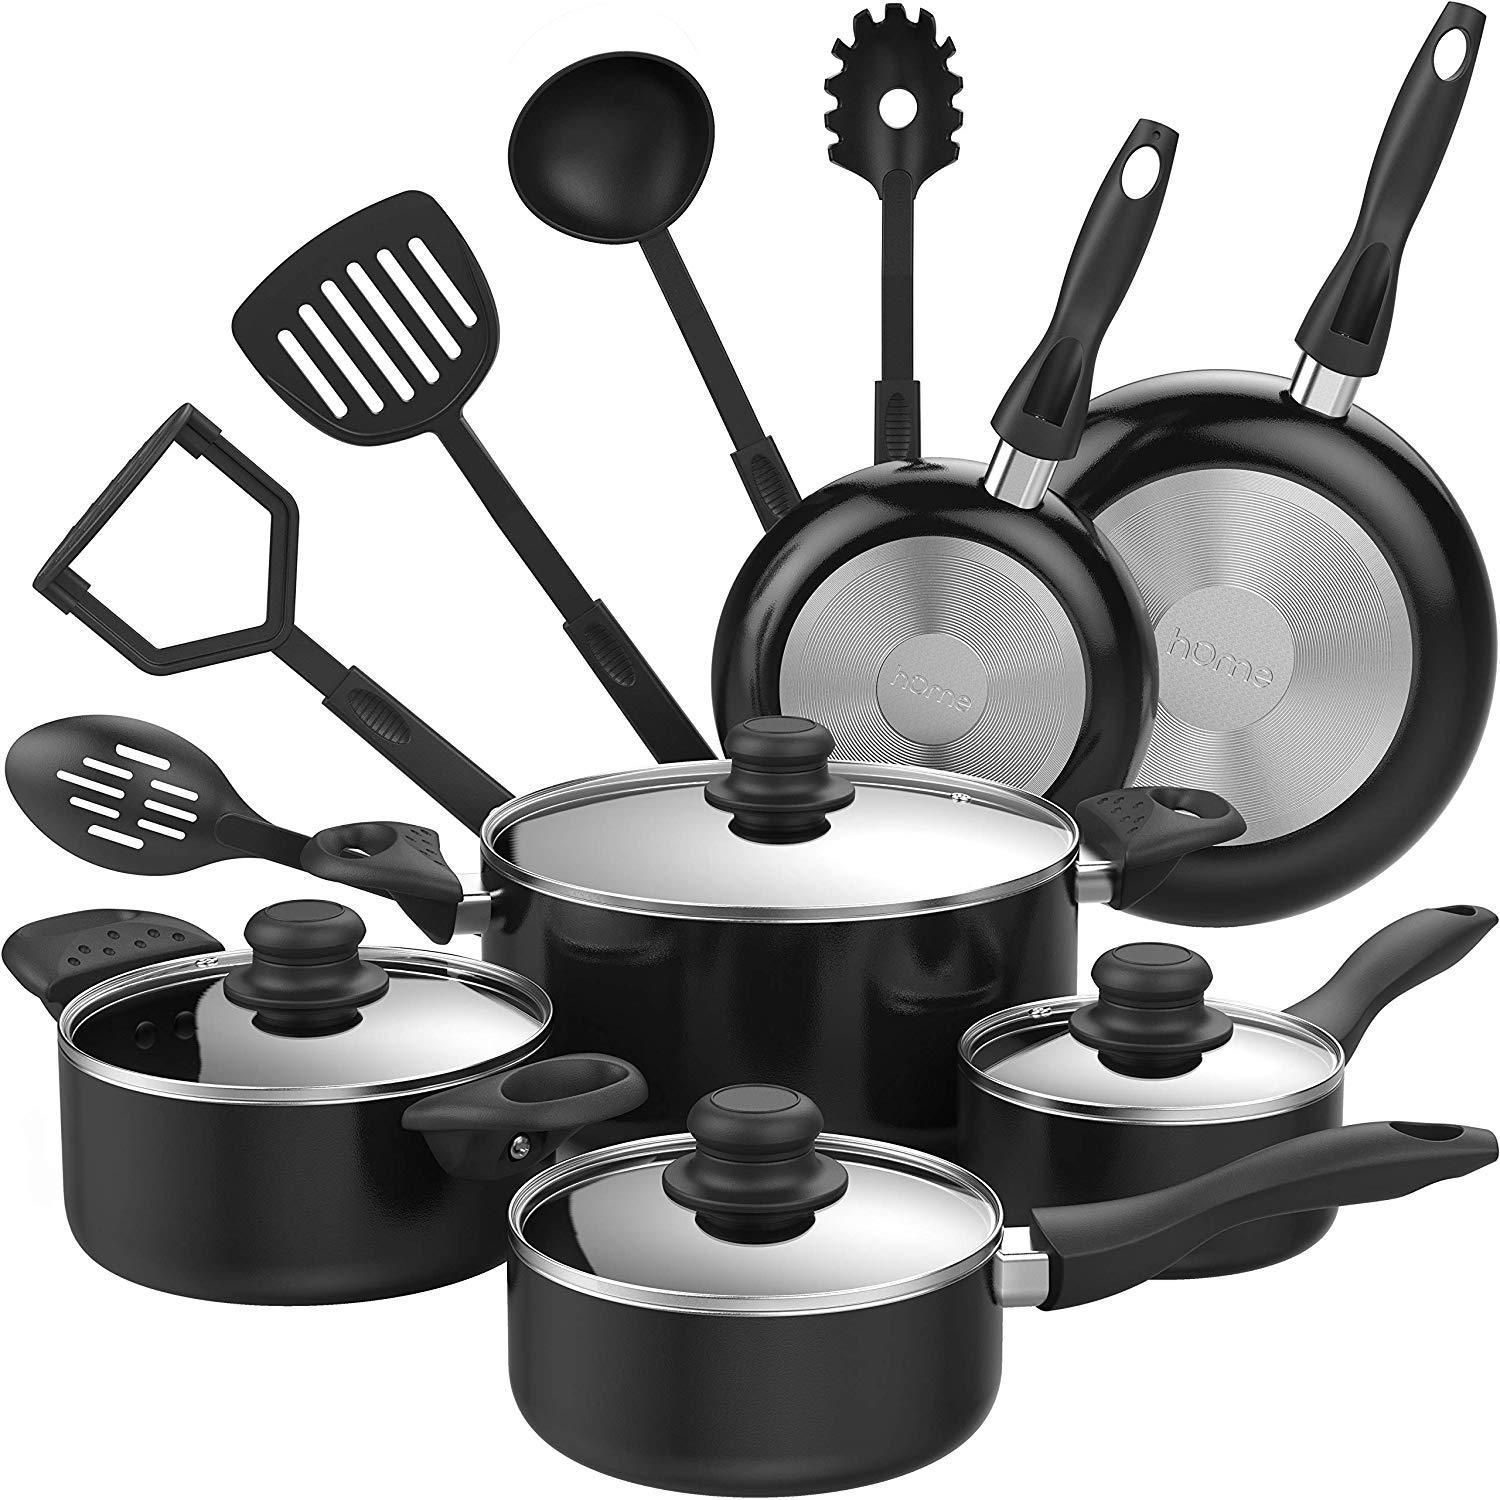 15 Piece Kitchen Cookware Set With Cooking Utensils Non Stick Pot